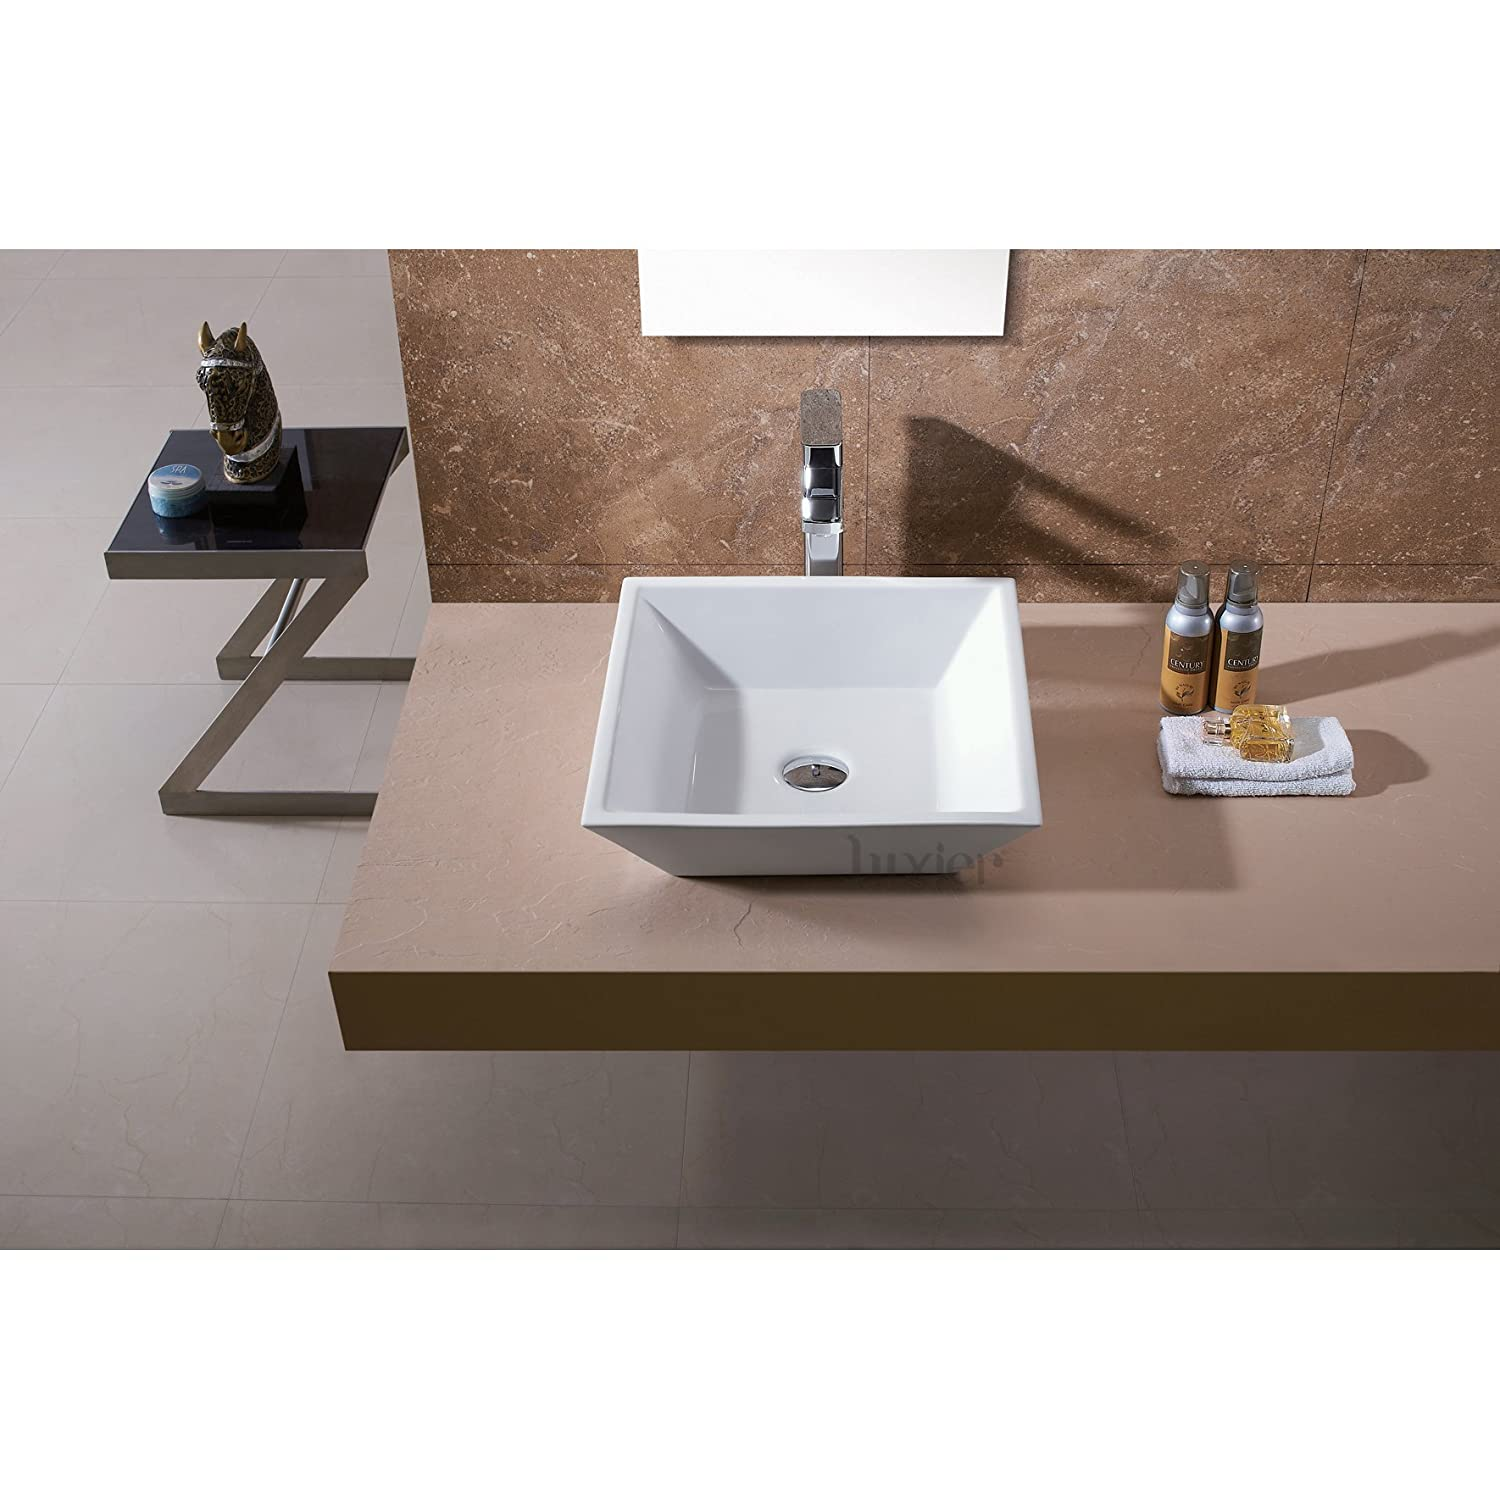 Ordinaire Luxier CS 006 Bathroom Porcelain Ceramic Vessel Vanity Sink Art Basin      Amazon.com